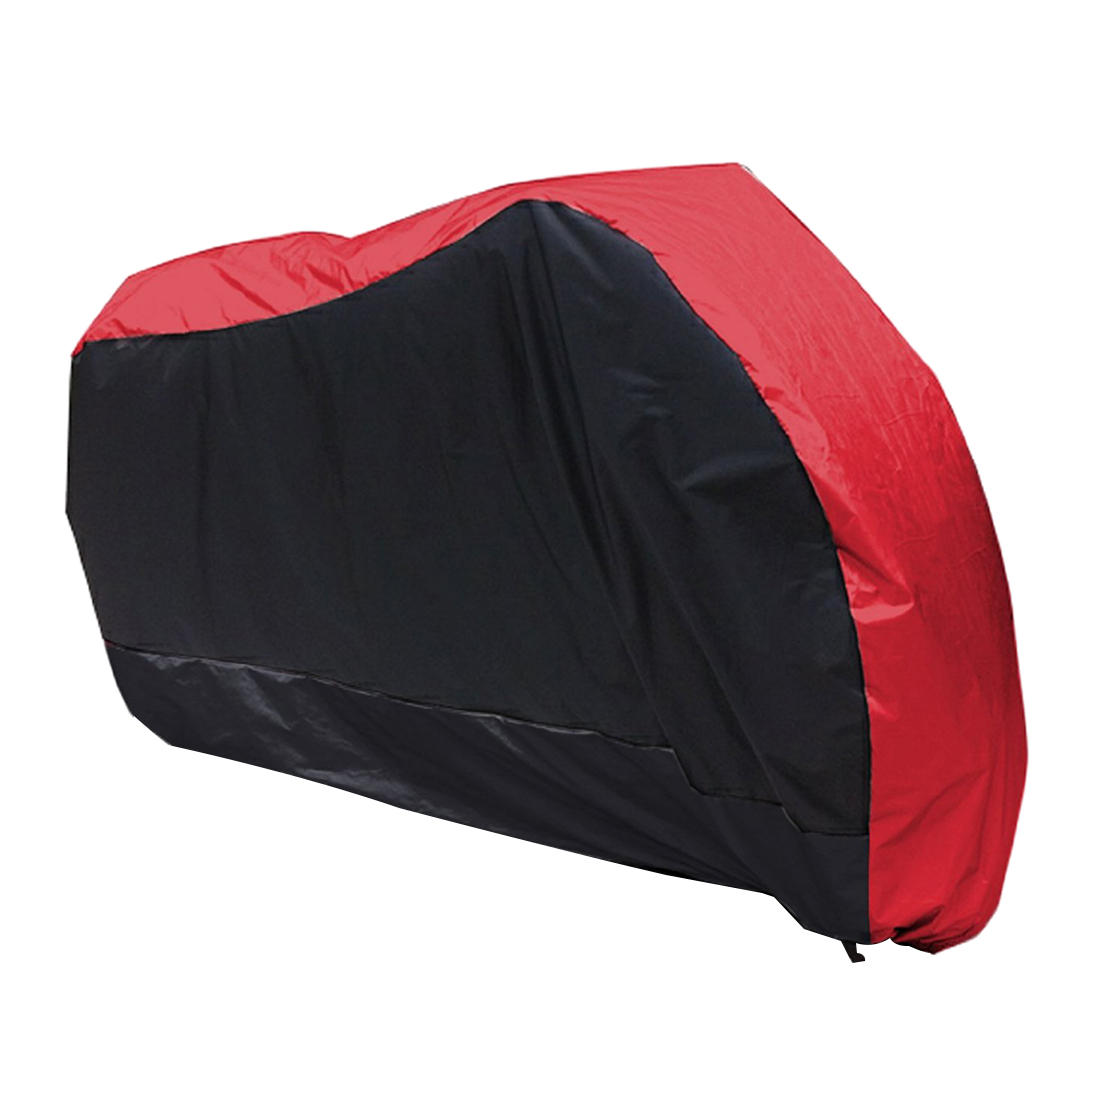 Motorcycle Motorbike Scooter Waterproof Water Resistent Rain UV Protective Breathable Cover storage bag XL/245x105x125cm